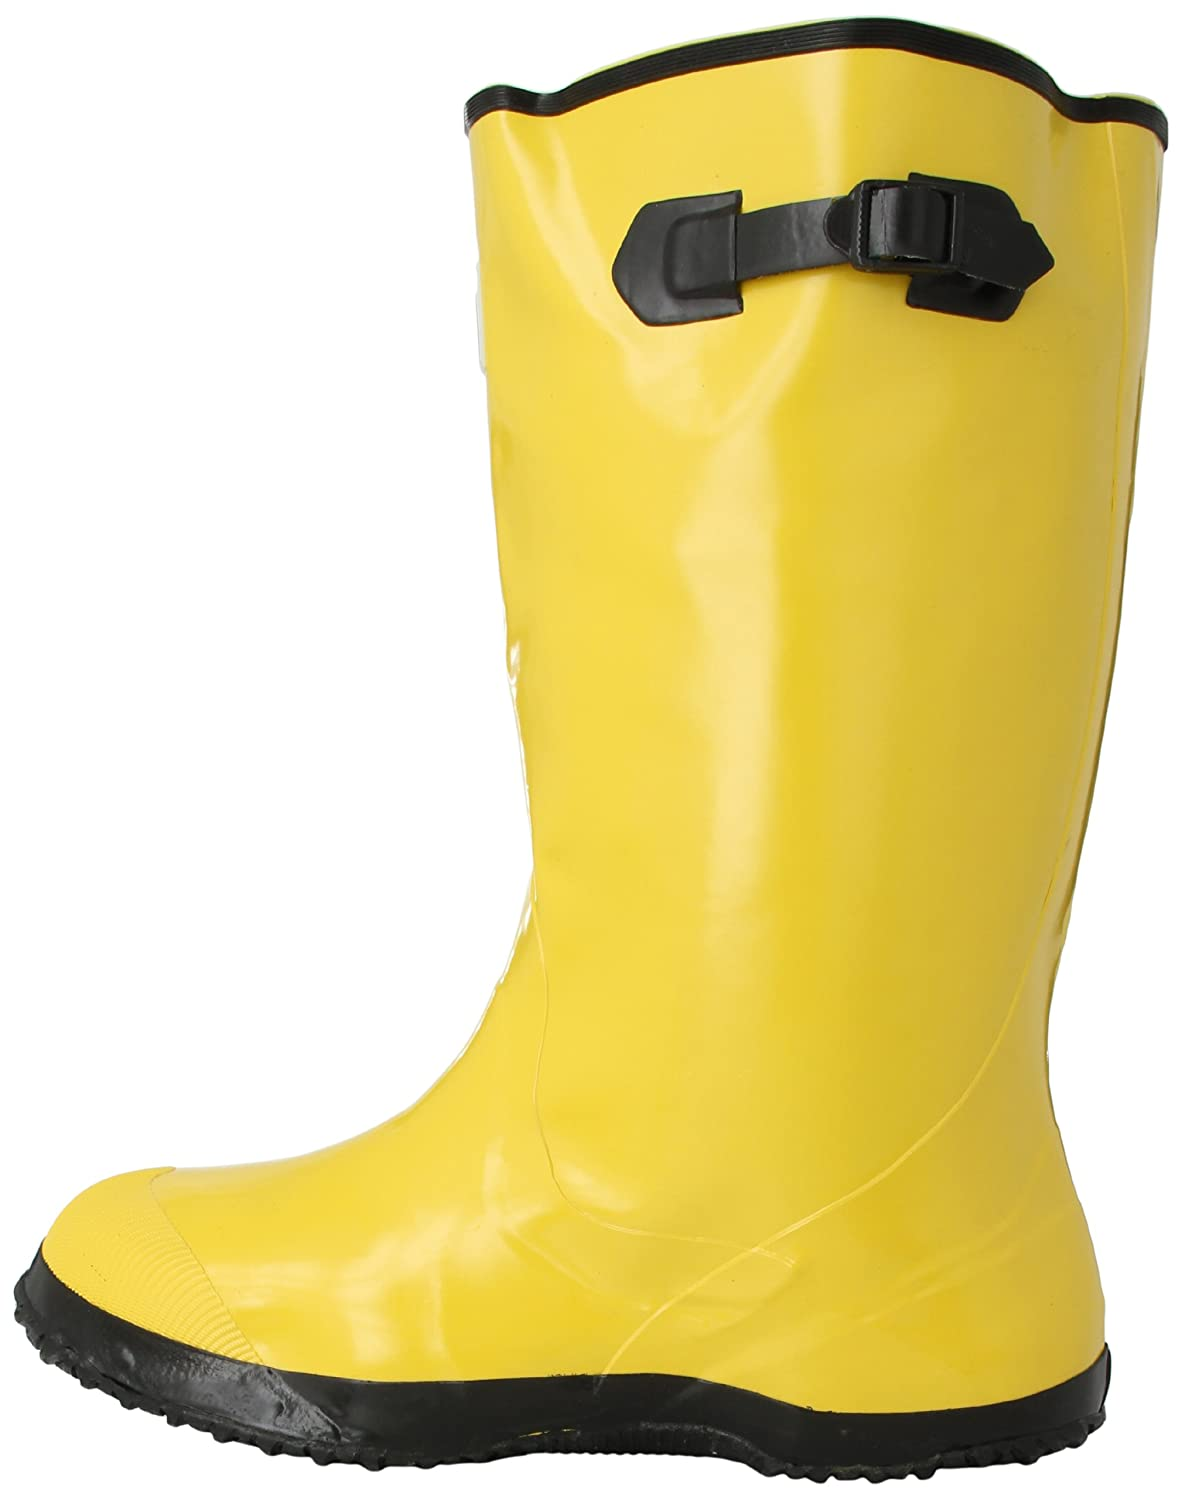 5668a948d4b1d Mutual 14500 Extra Wide Over-The-Shoe Work Slush Boot, 17